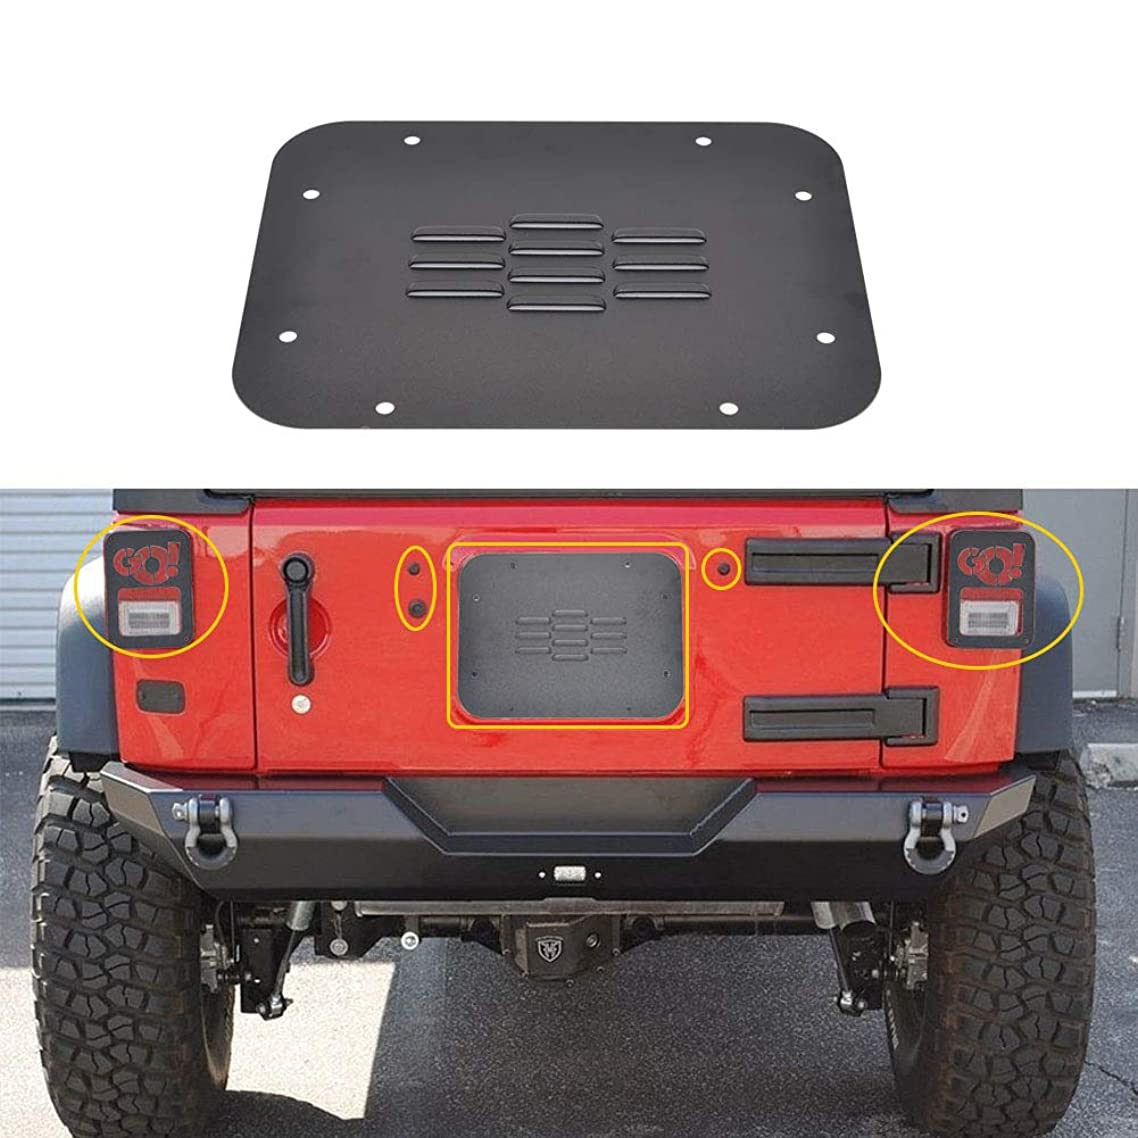 GZSJY Jeep Wrangler Rear Tailgate Accessories - Tailgate Plugs/Vent-Plate Cover/Light Cover for 2007-2018 Jeep JK Wrangler & Unlimited